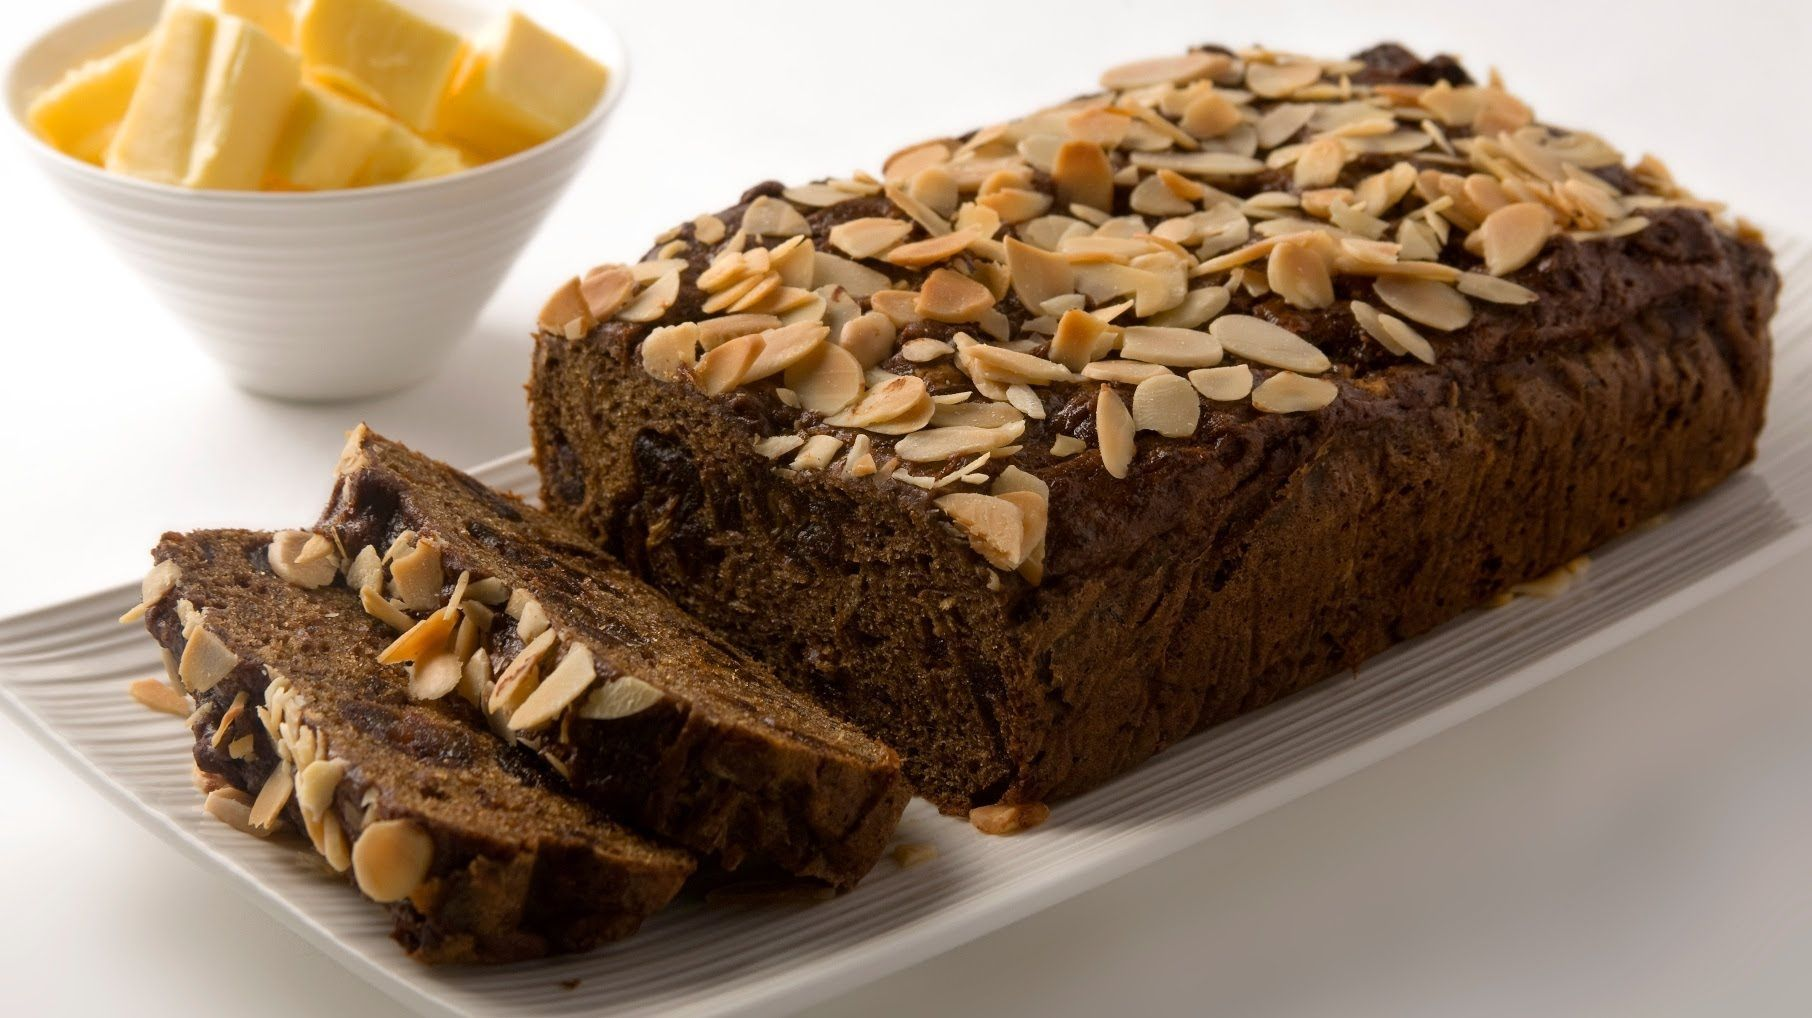 Easy recipes date loaf 4 ingredients kim mccosker all bout food forumfinder Image collections